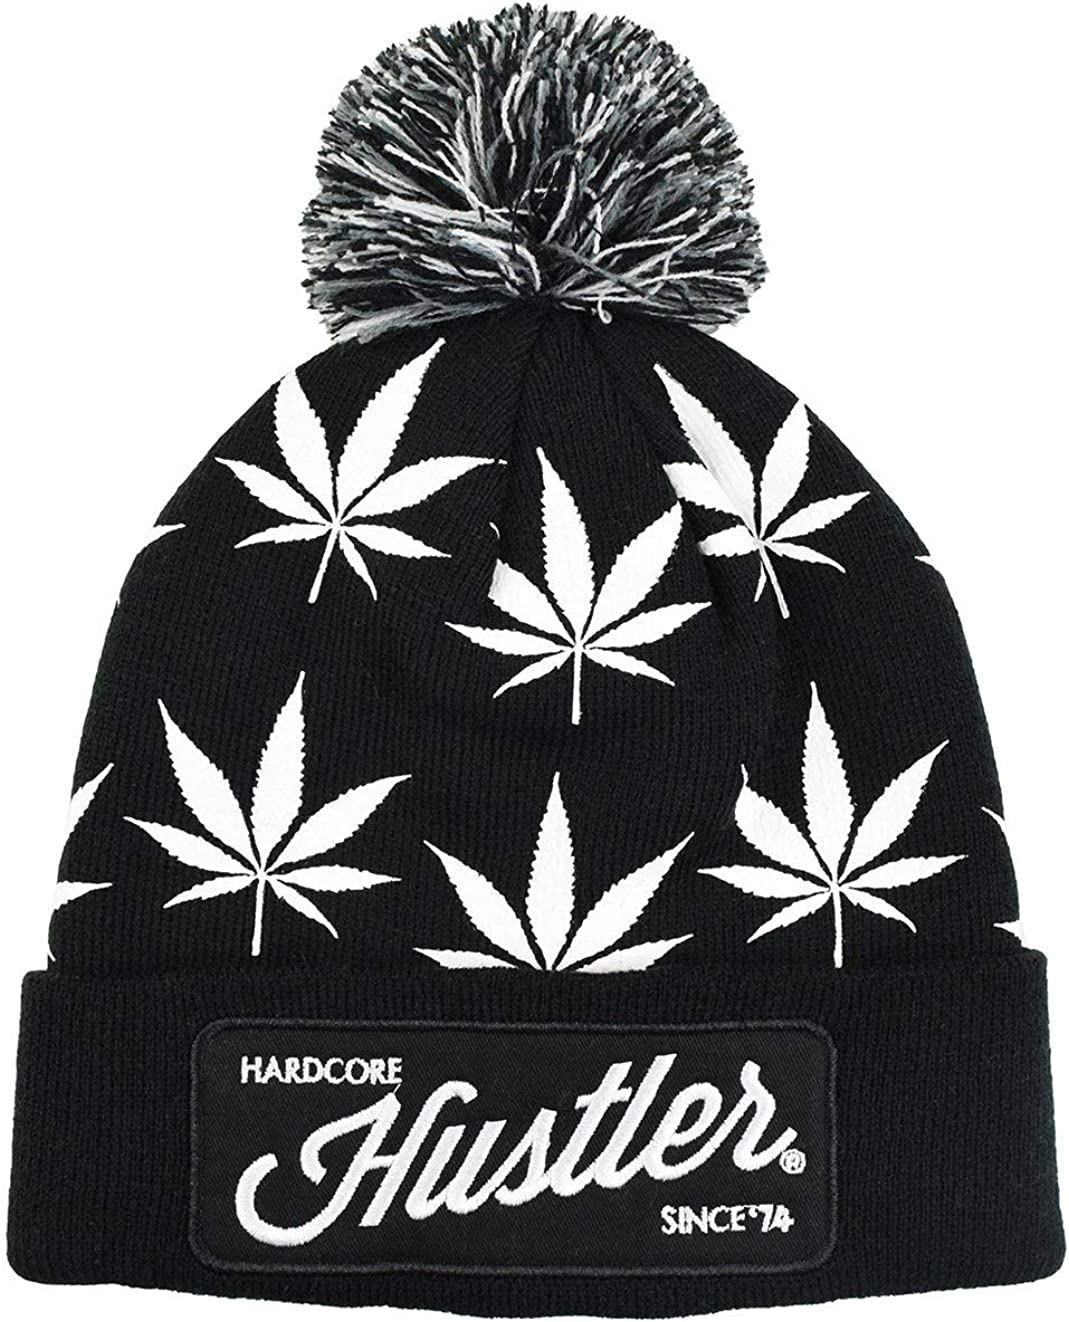 HUSTLER Weed One Size Beanie with Pom